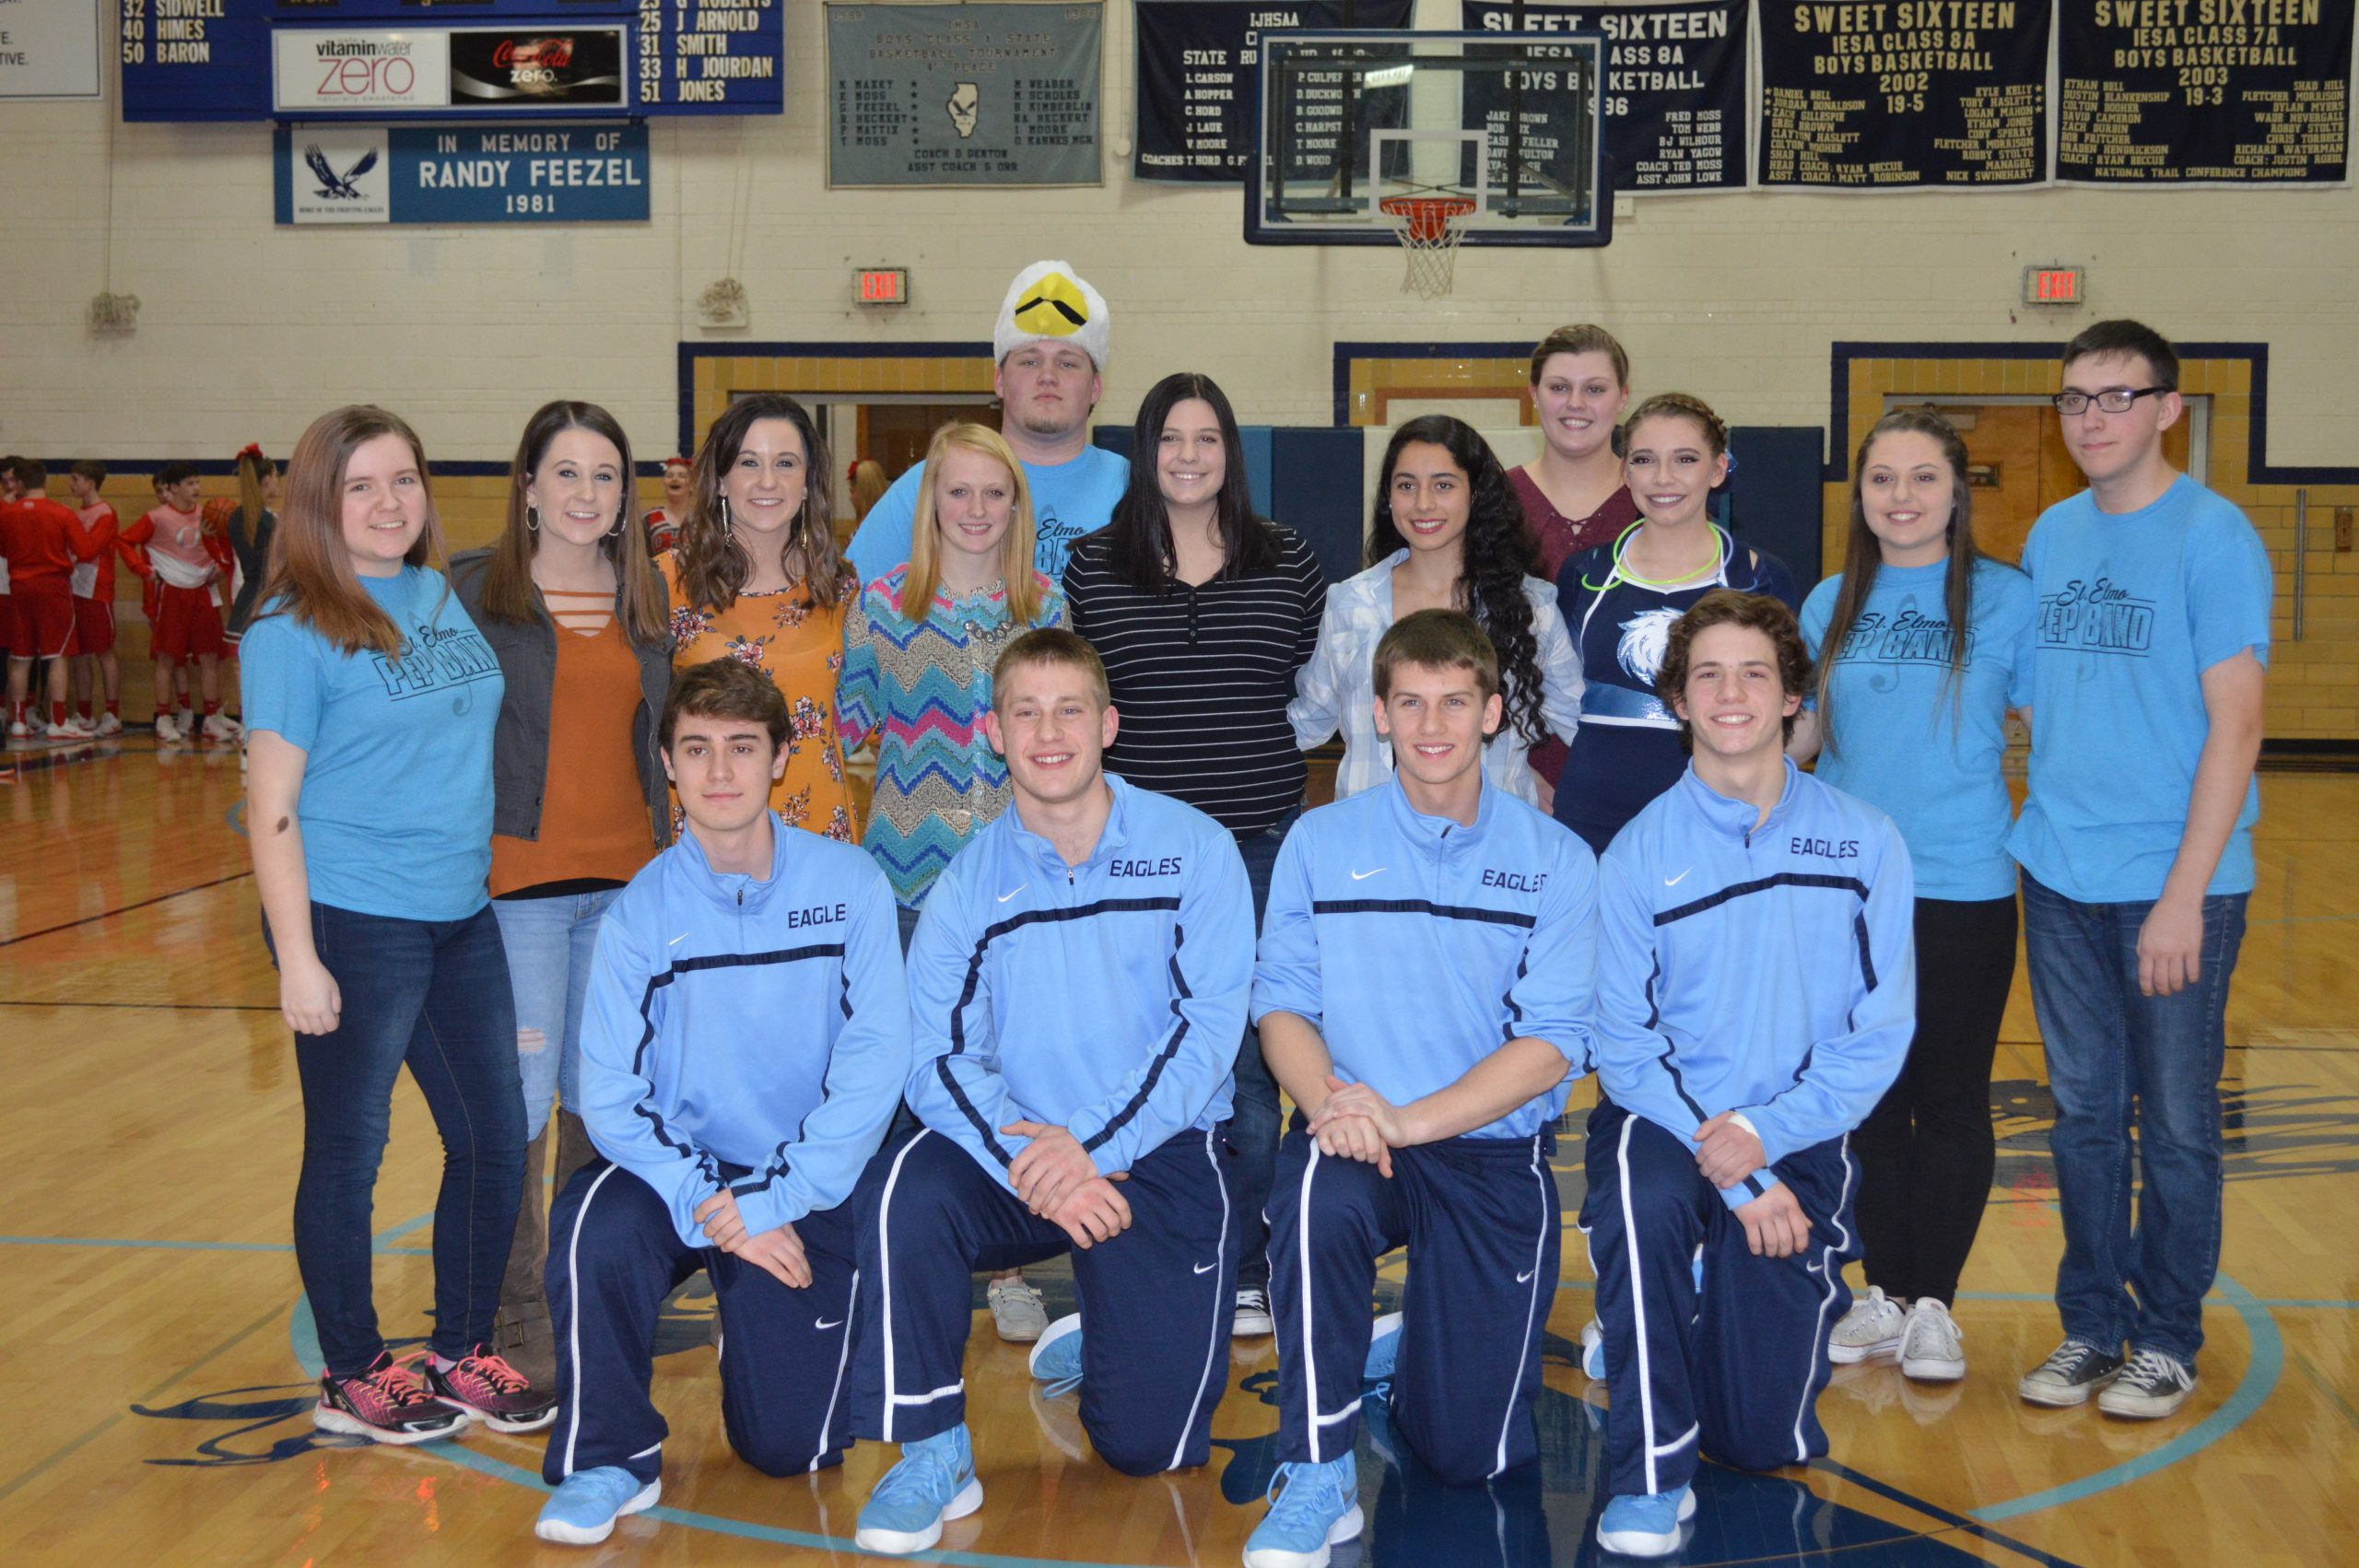 St. Elmo-Brownstown Recognizes several Seniors for Final home basketball game